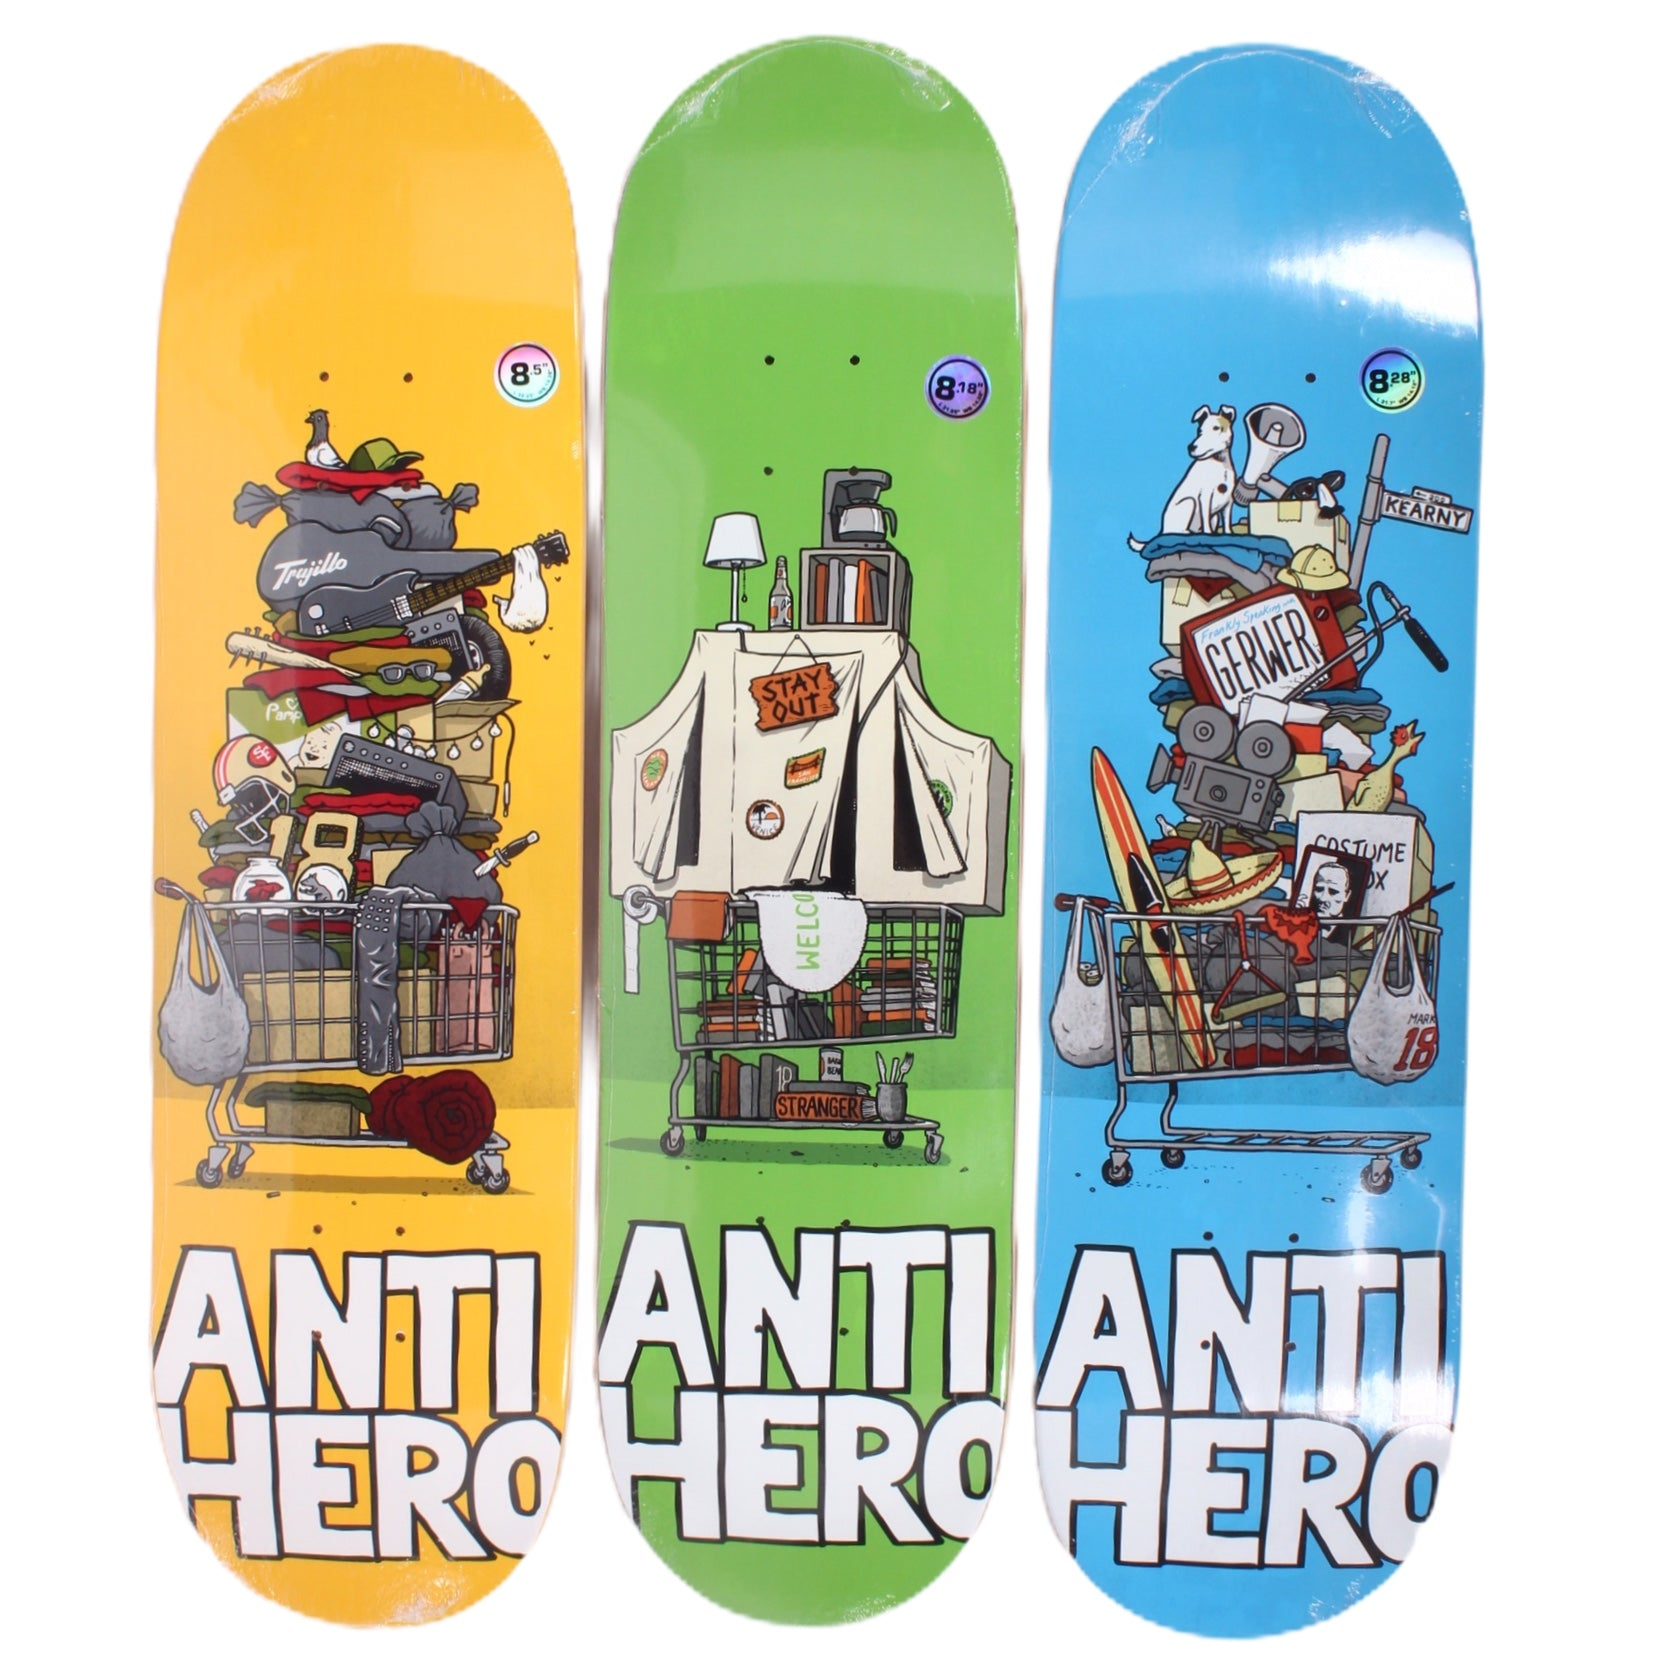 Overripe Anti Hero Set of 3 Decks Hoarder Hero Todd Francis Art 2015